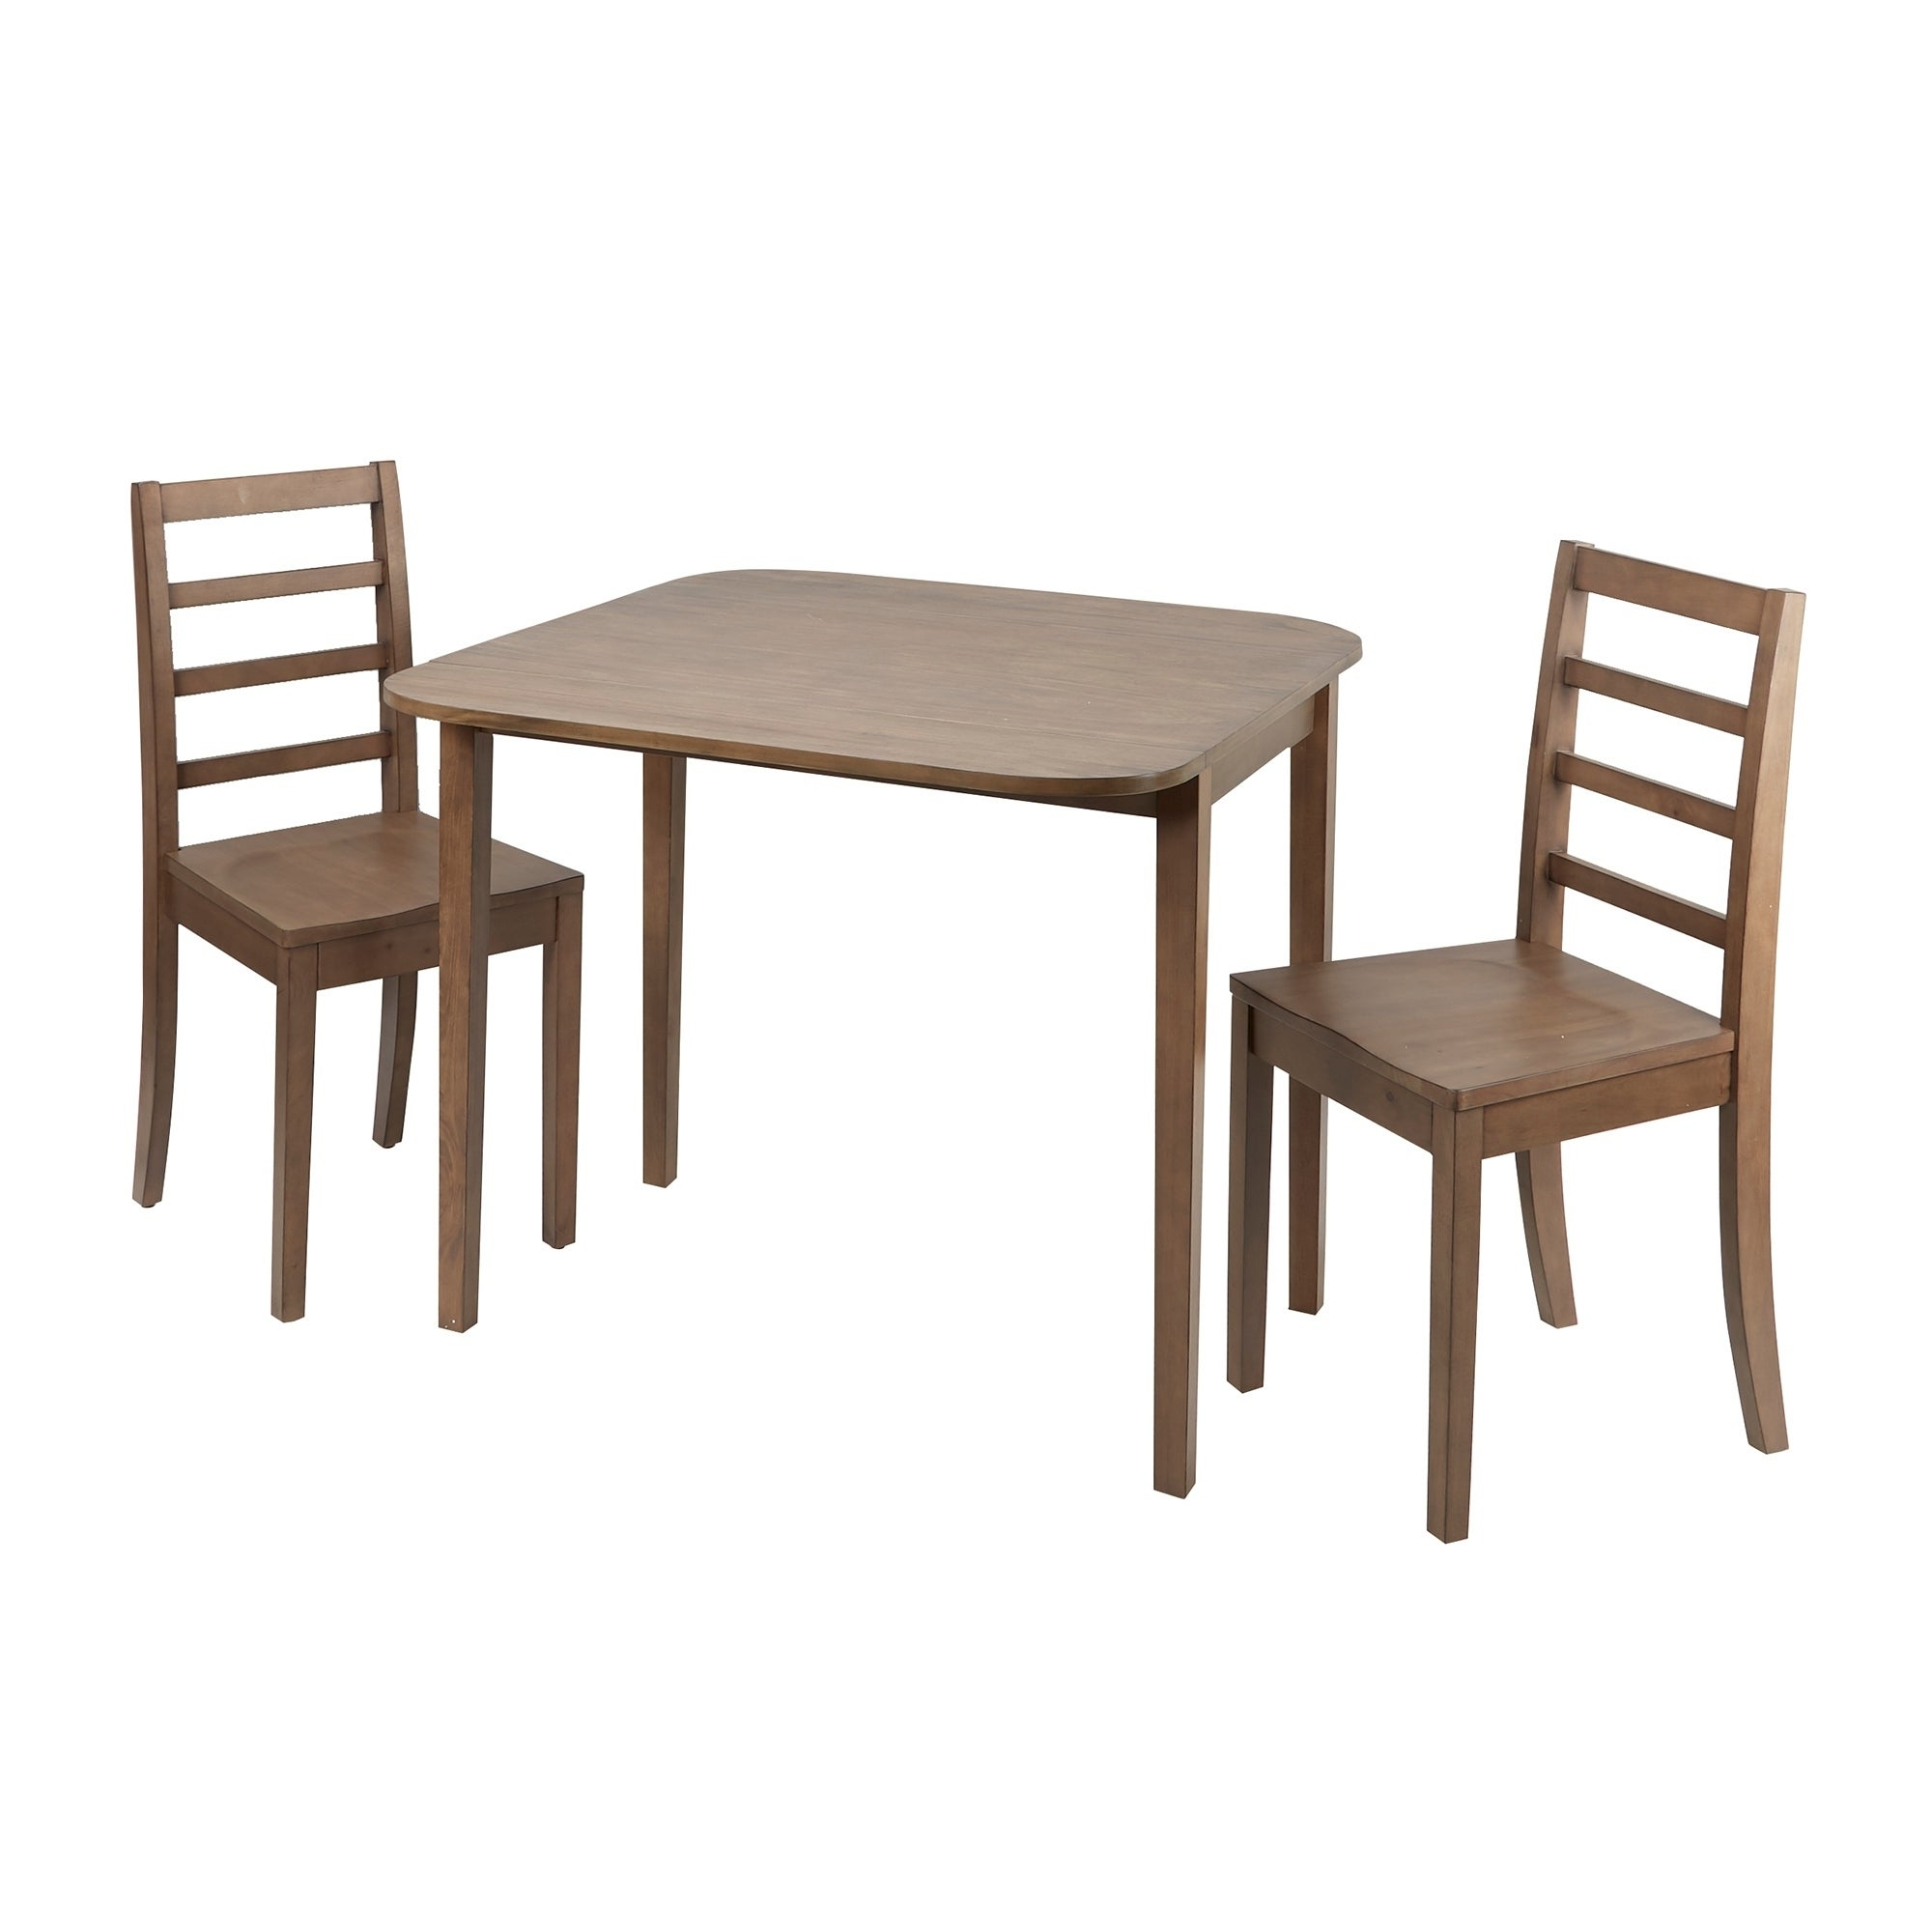 2017 Mason 3 Piece Drop Leaf Dining Set With Ladderback Chairs Intended For Transitional 3 Piece Drop Leaf Casual Dining Tables Set (View 1 of 30)